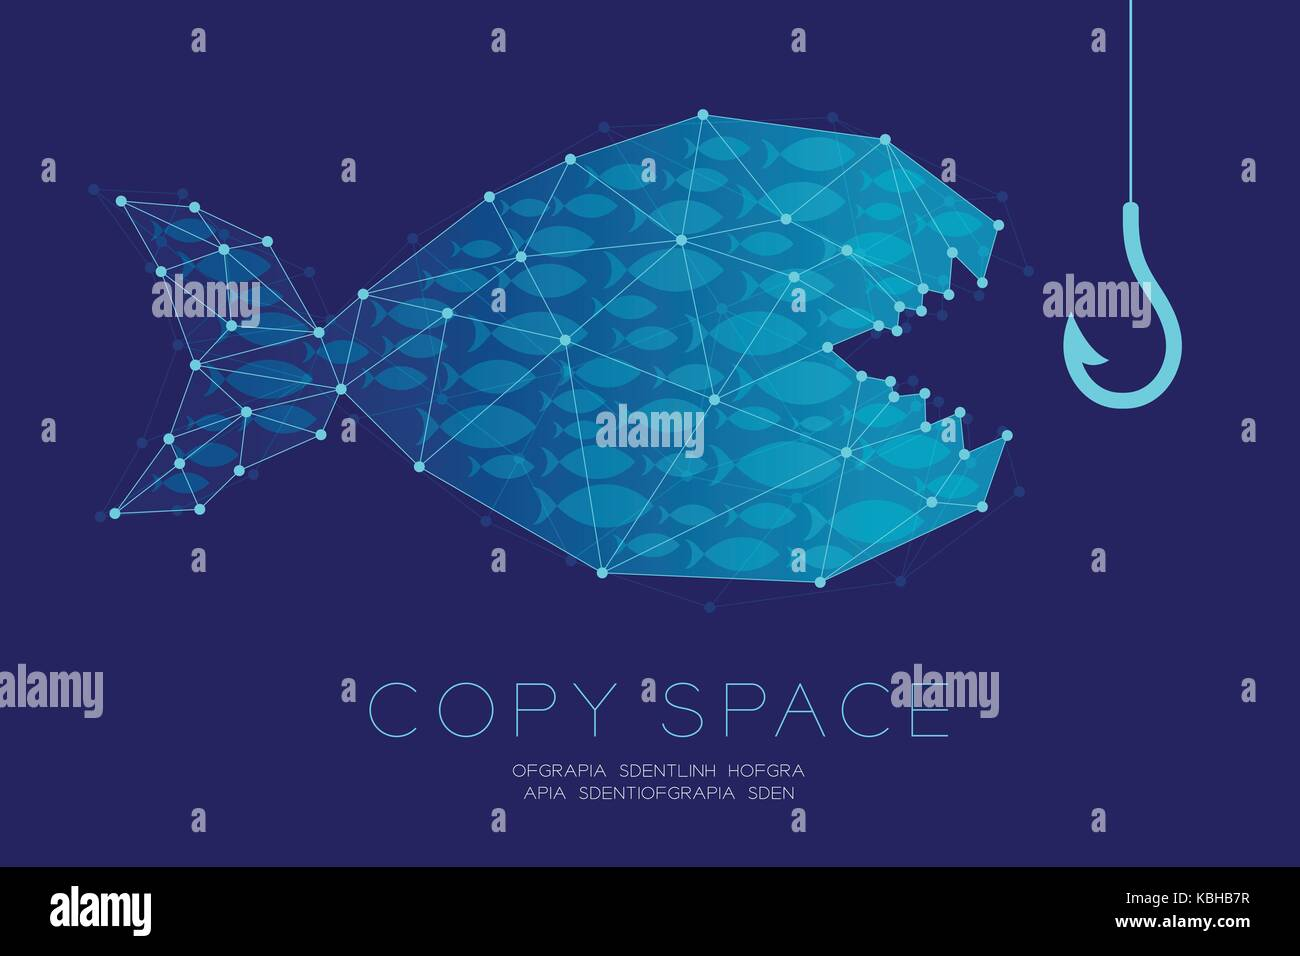 Network Marketing Online set Advertising with fishing rod and shoal or school of small fish concept idea illustration - Stock Image